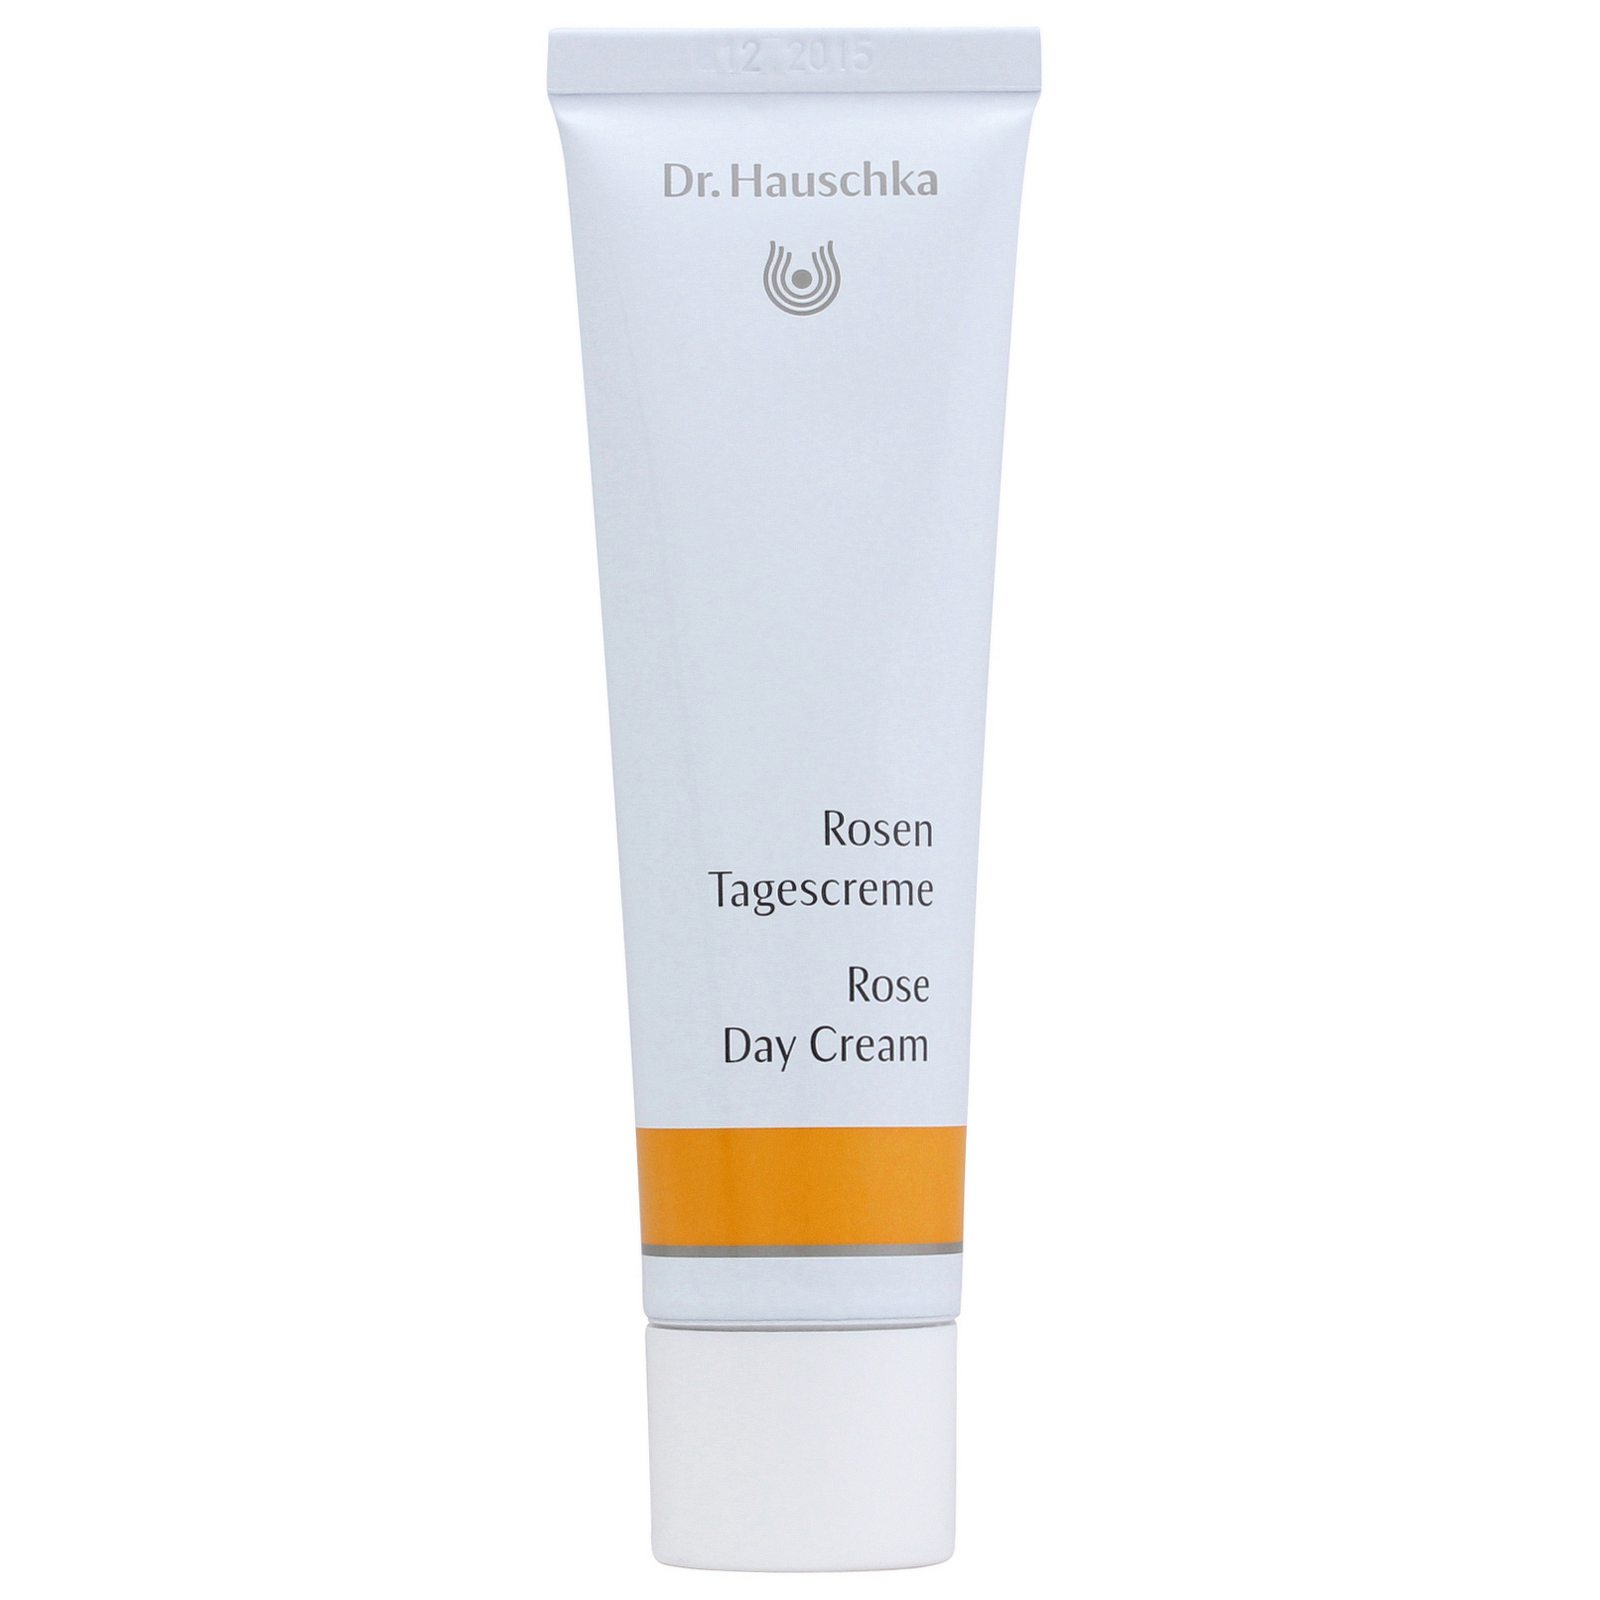 Dr. Hauschka Face Care Rose Day Cream 30ml